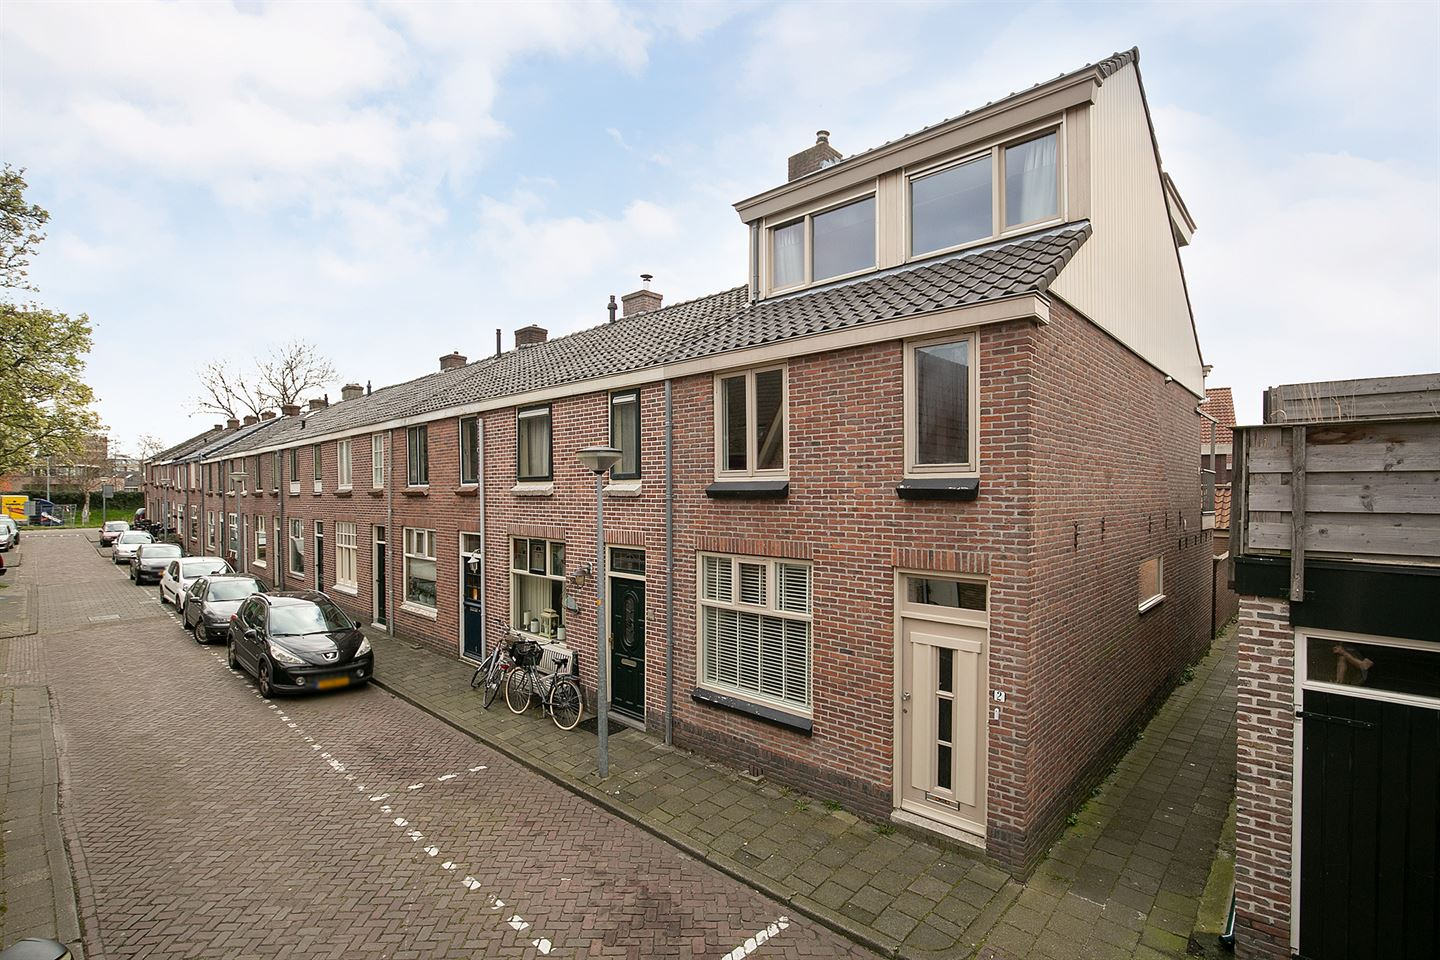 View photo 1 of Waterschapstraat 2